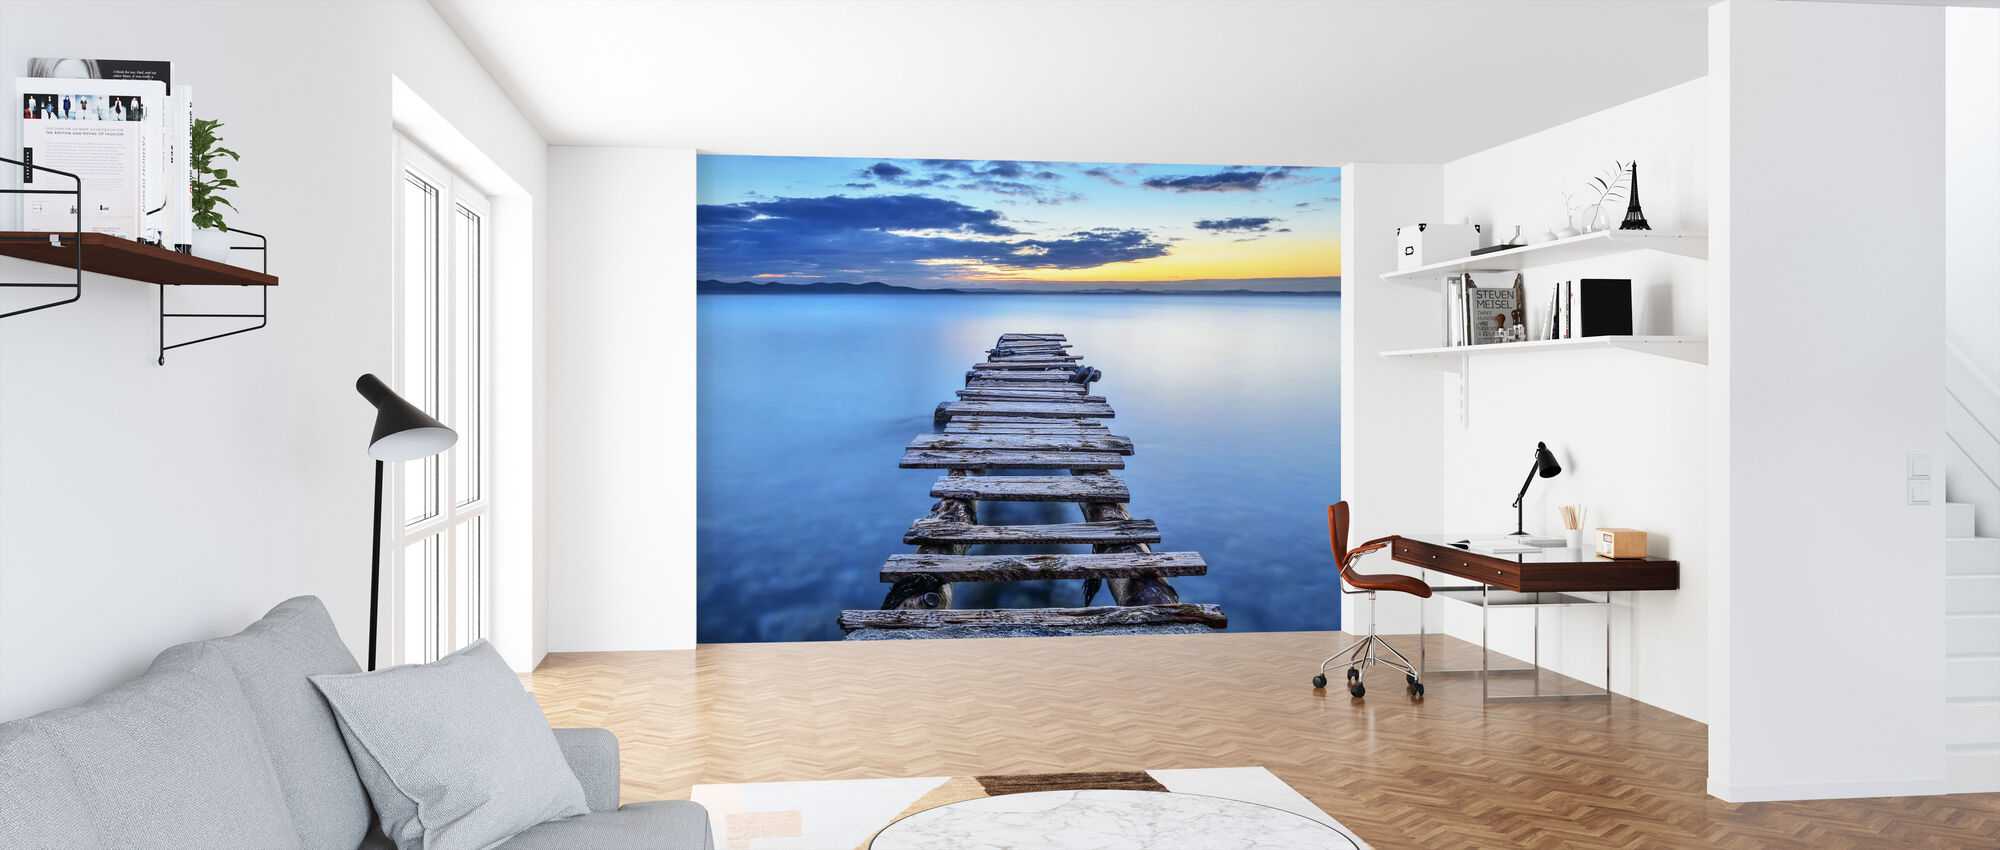 Pier - Wallpaper - Office